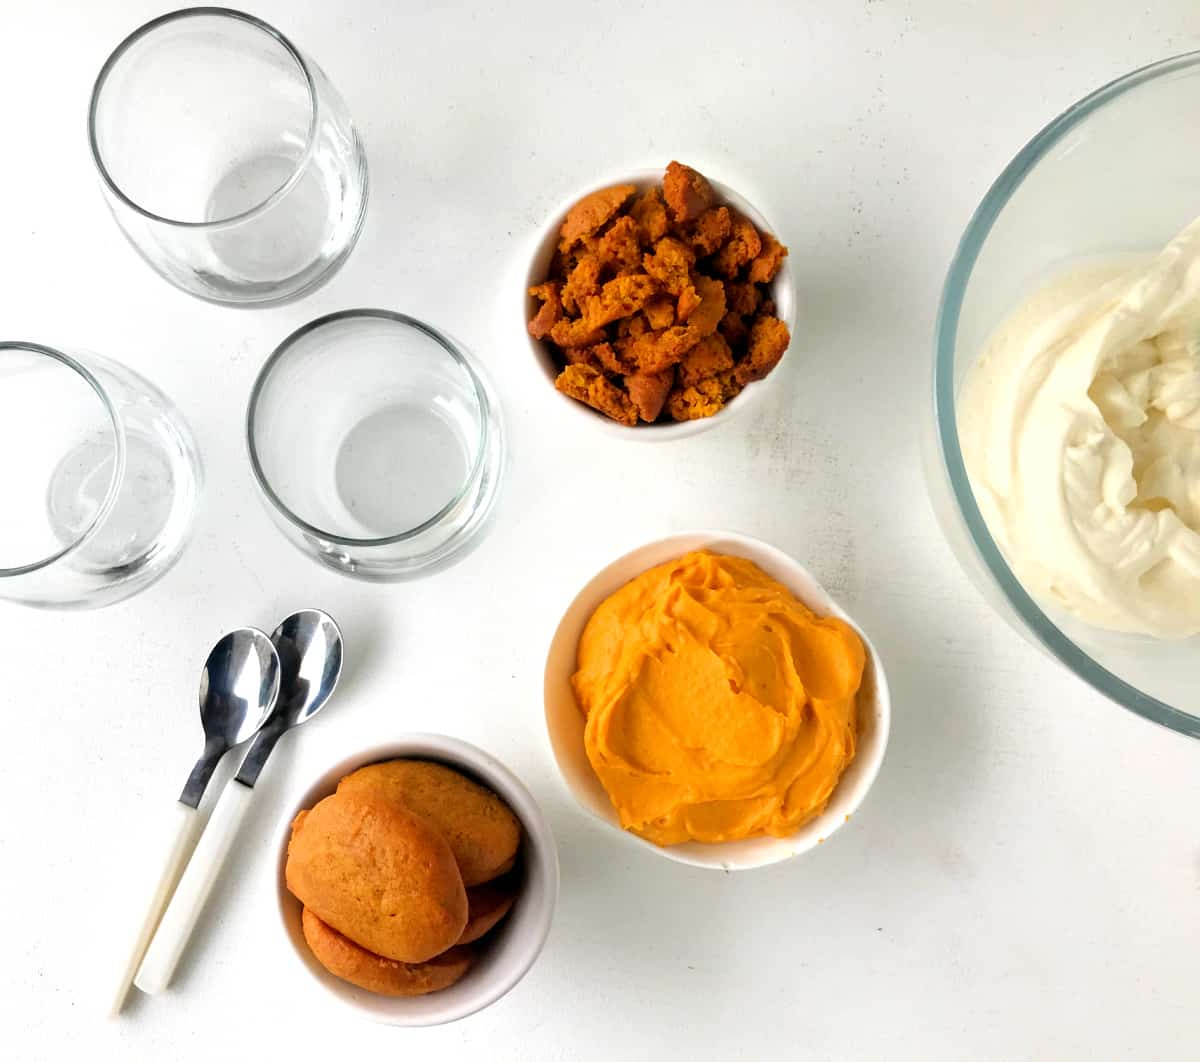 Overview of glasses, bowls with pumpkin mixtures, spoons, all on a white surface